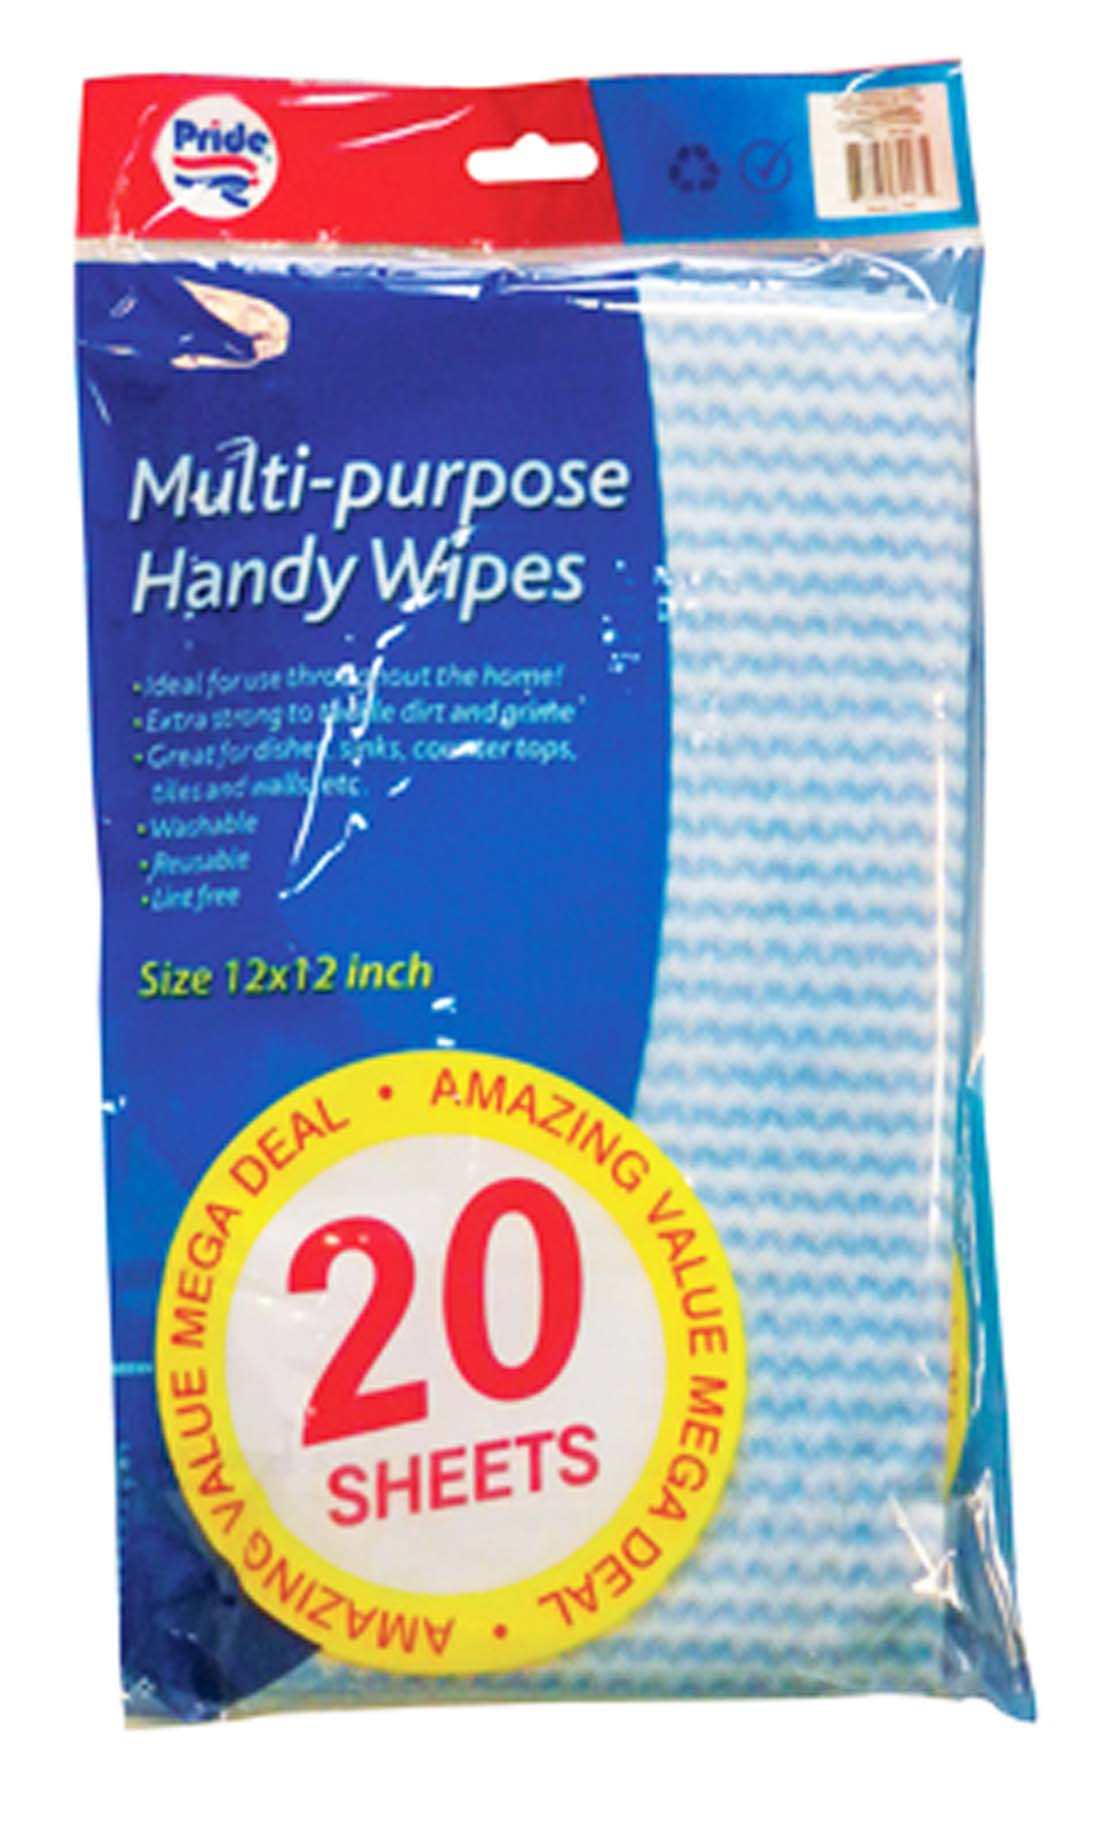 View ALL-PURPOSE HANDY WIPES 20 SHEETS 12 X 12 INCH